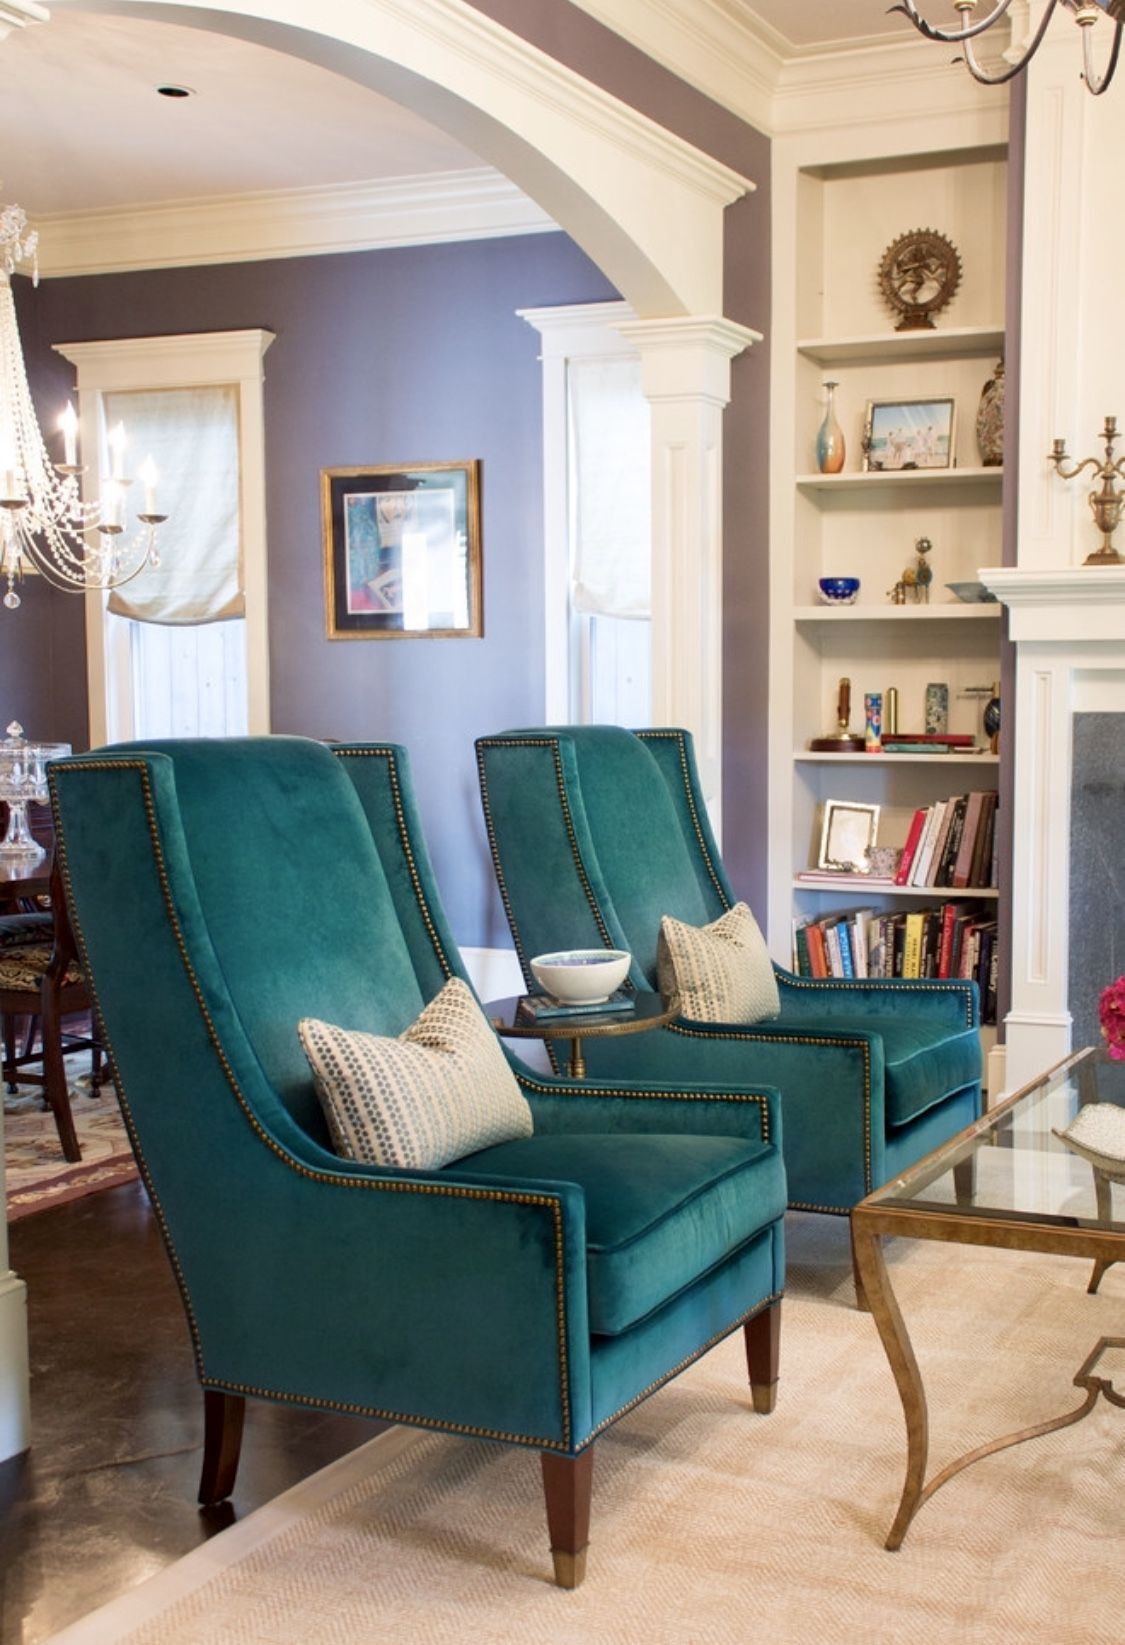 Gorgeous Teal Living Room Decor With Teal Chairs Teal Li